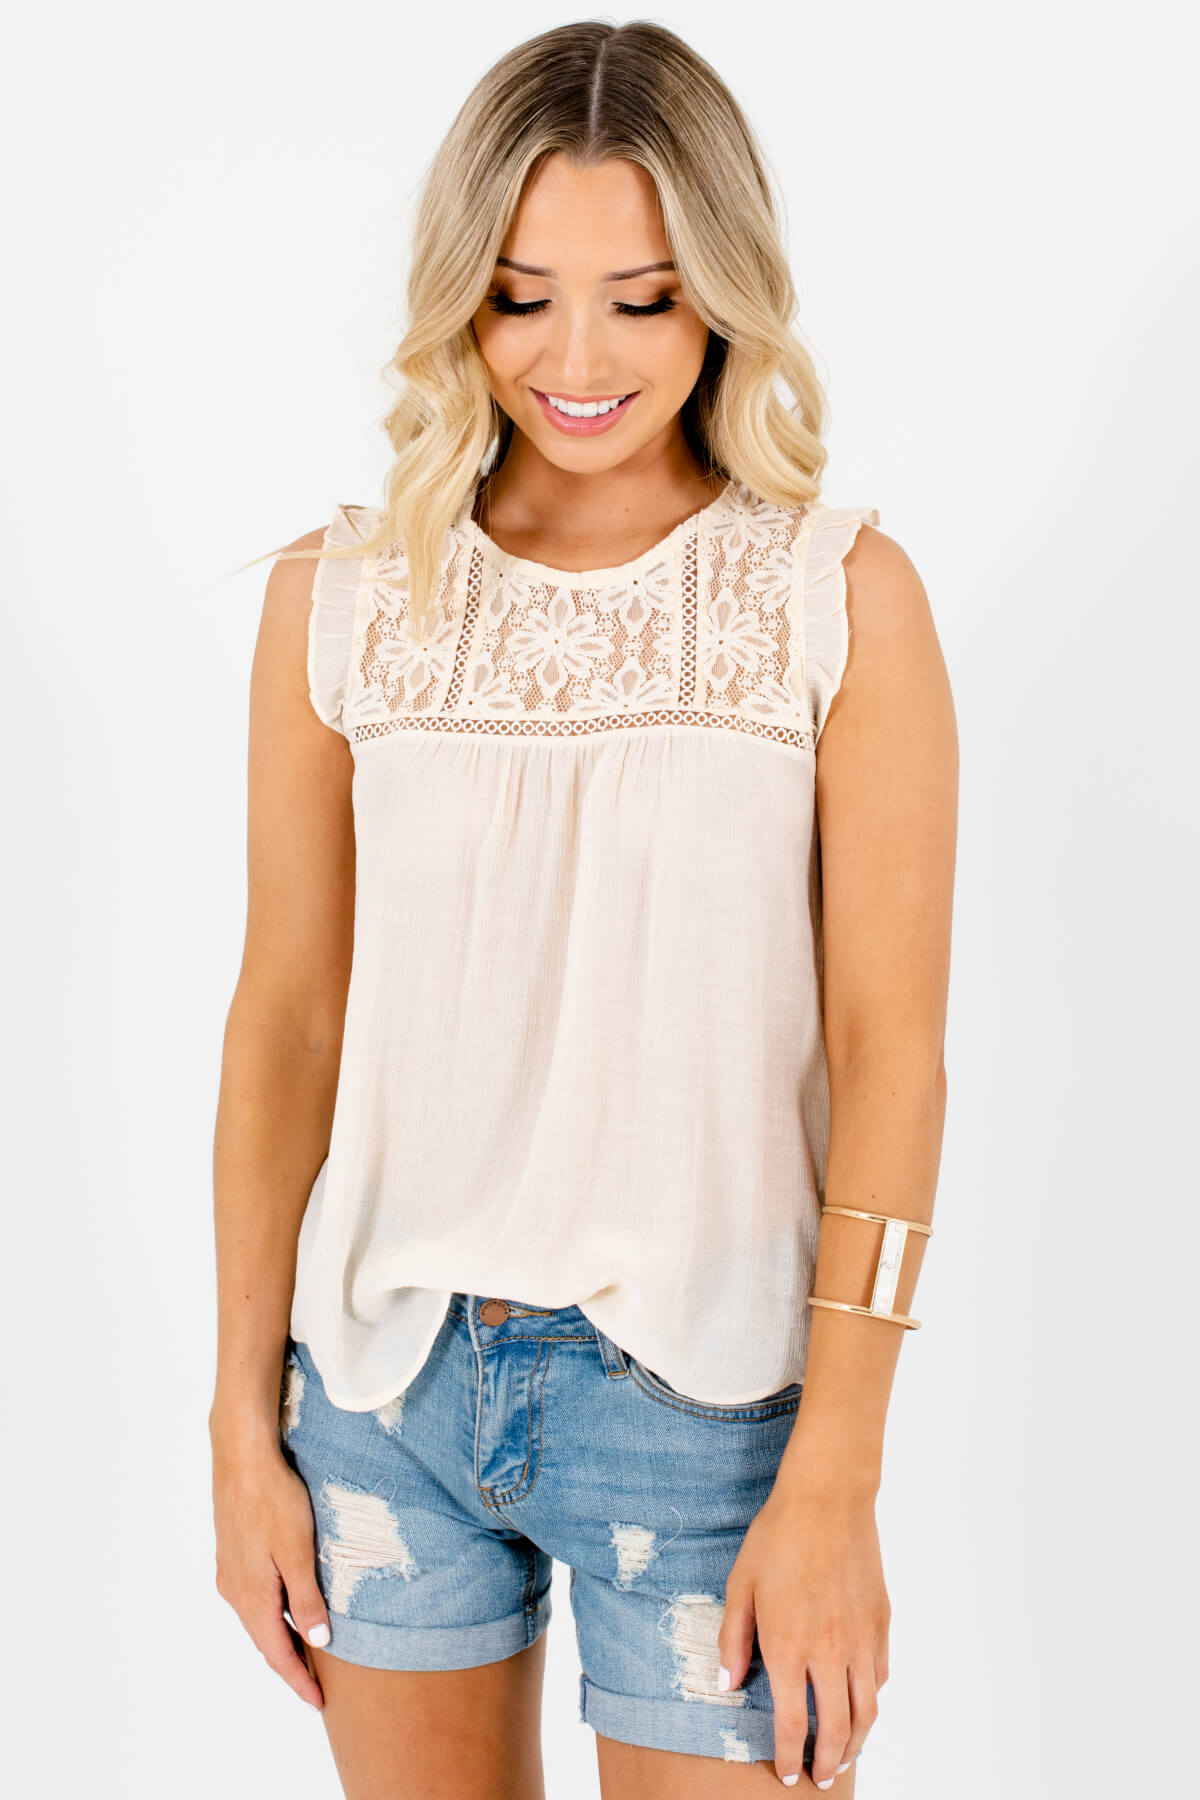 Cream Lace Ruffle Sleeve Tops Affordable Online Boutique